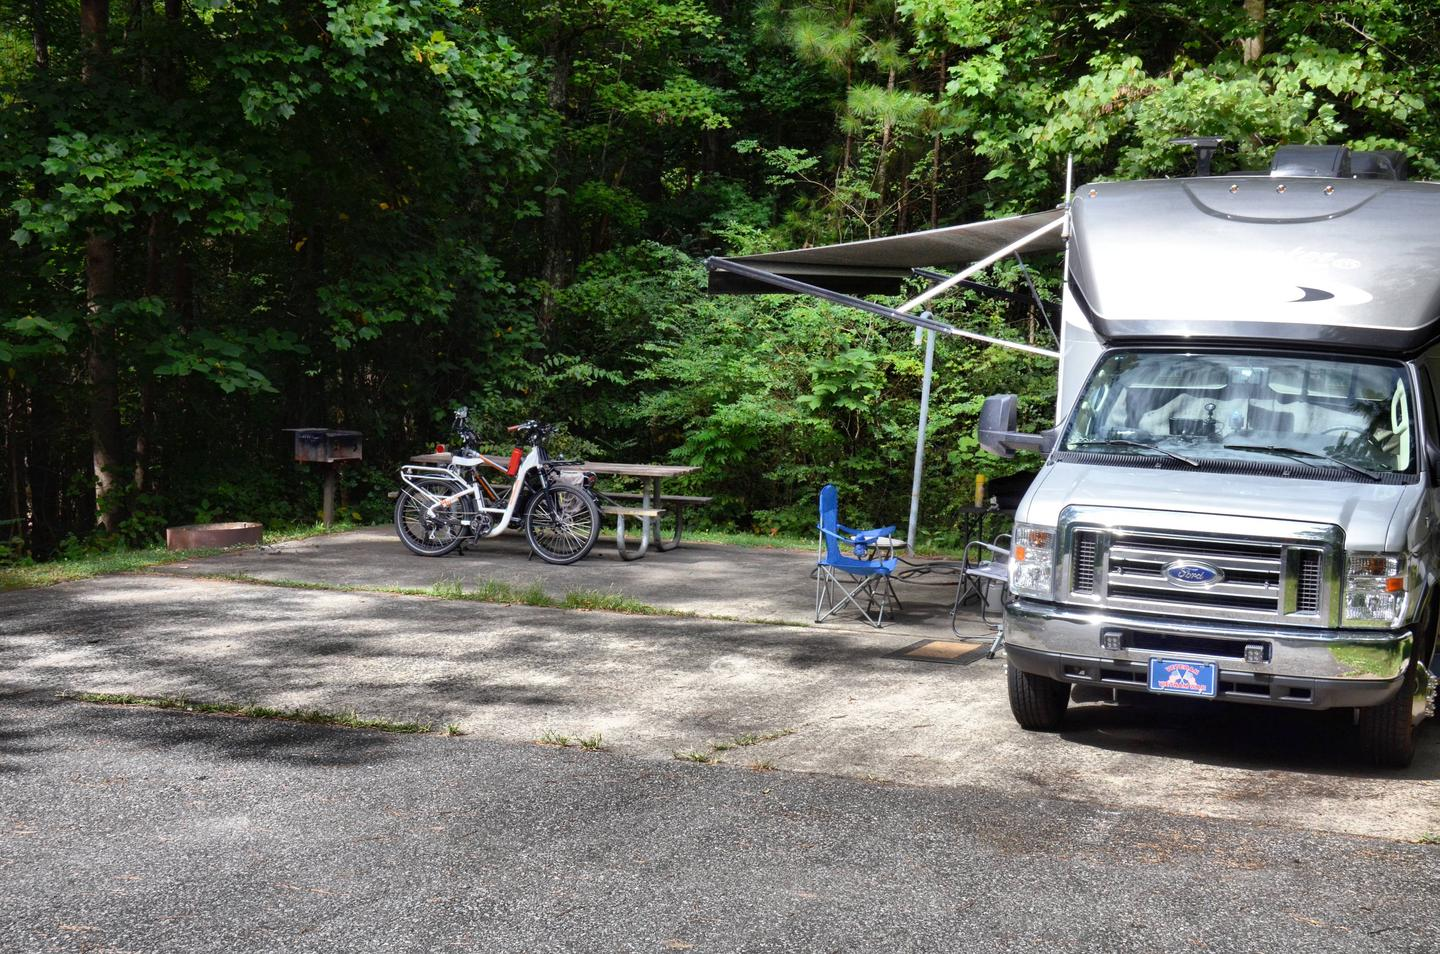 Awning-side clearance, campsite view.Payne Campground, campsite 59.